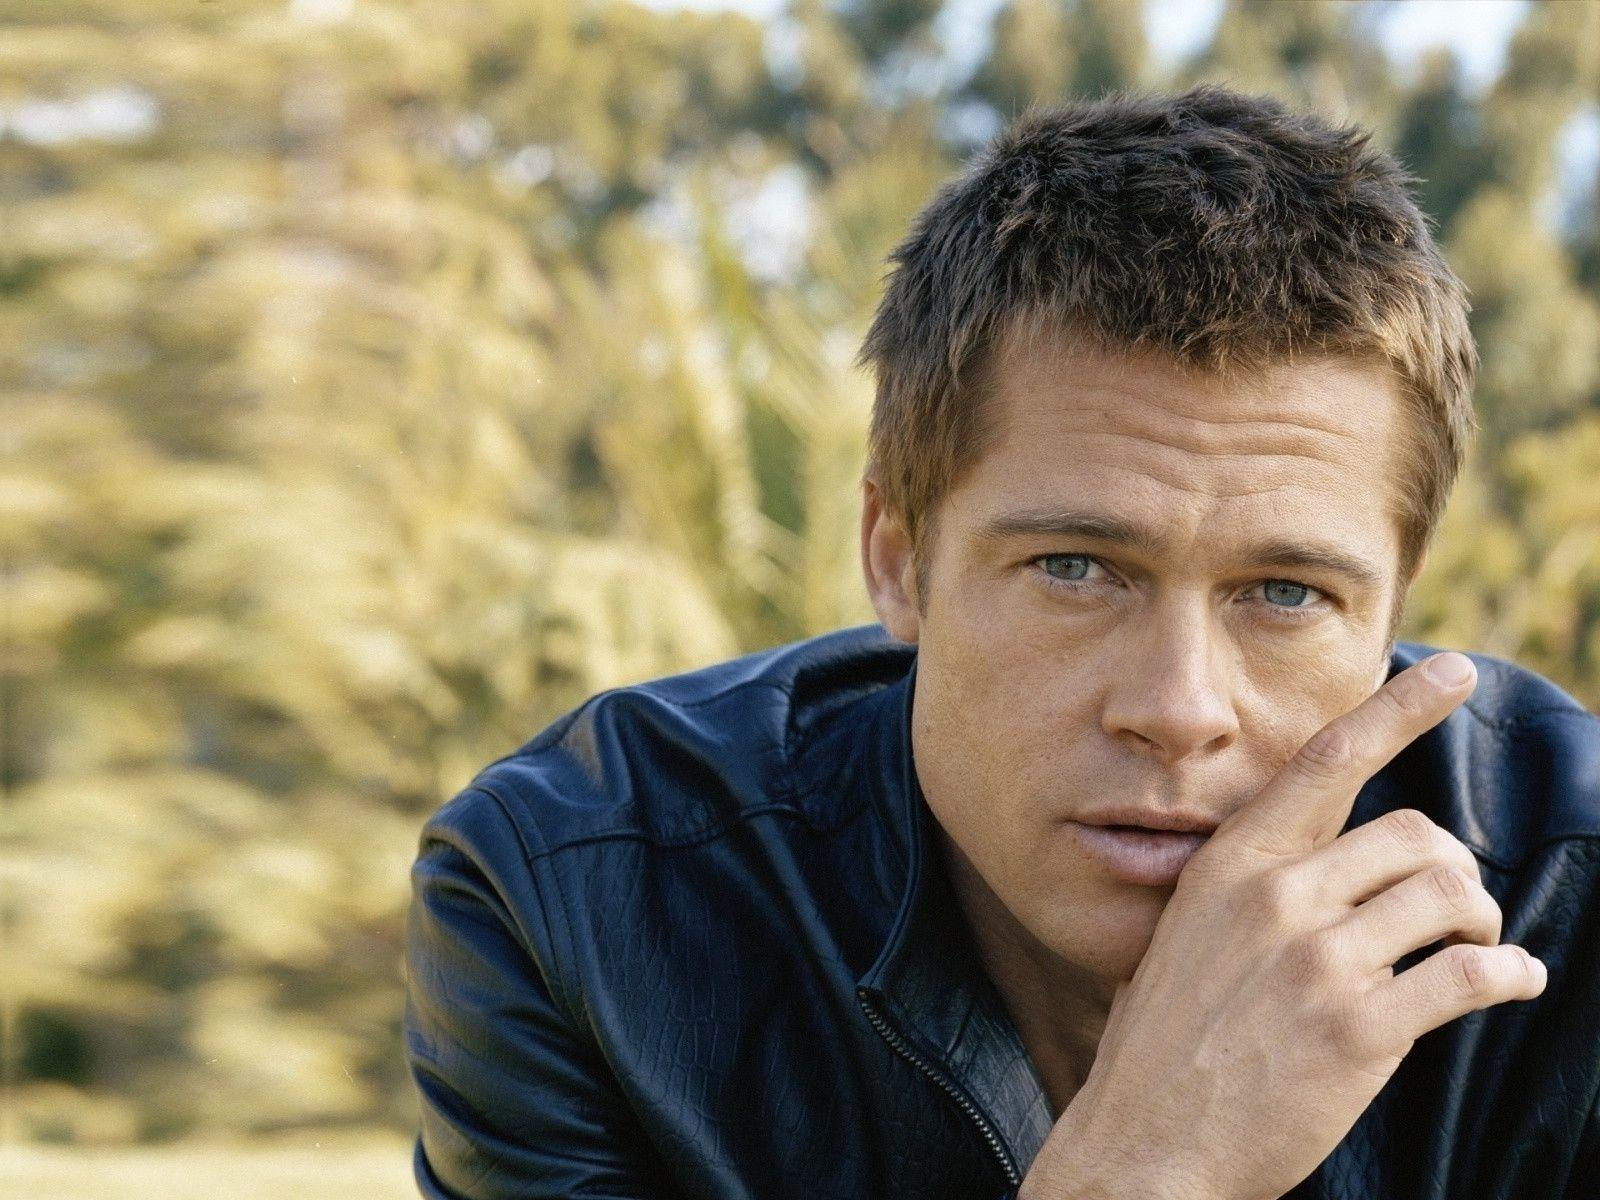 Brad Pitt Wallpaper HD [1600x1200] - Free wallpaper full hd 1080p ...